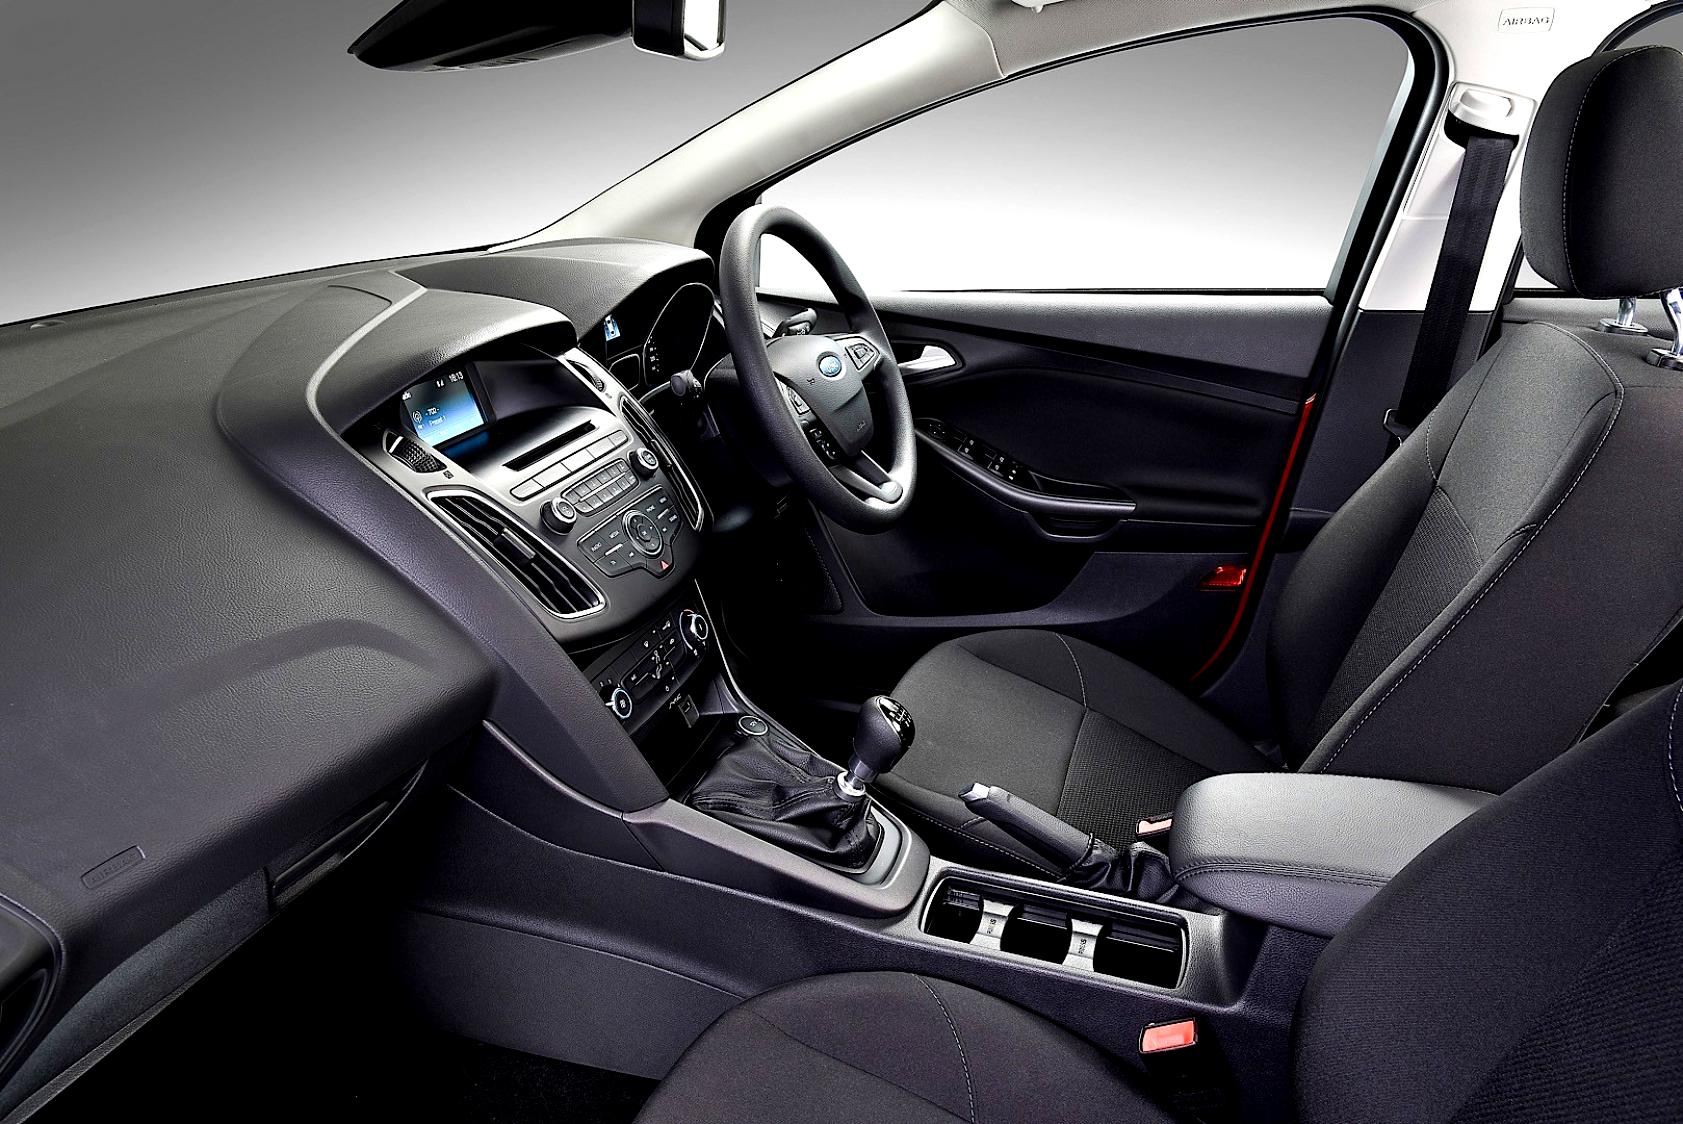 Ford Focus Sedan 2014 #67